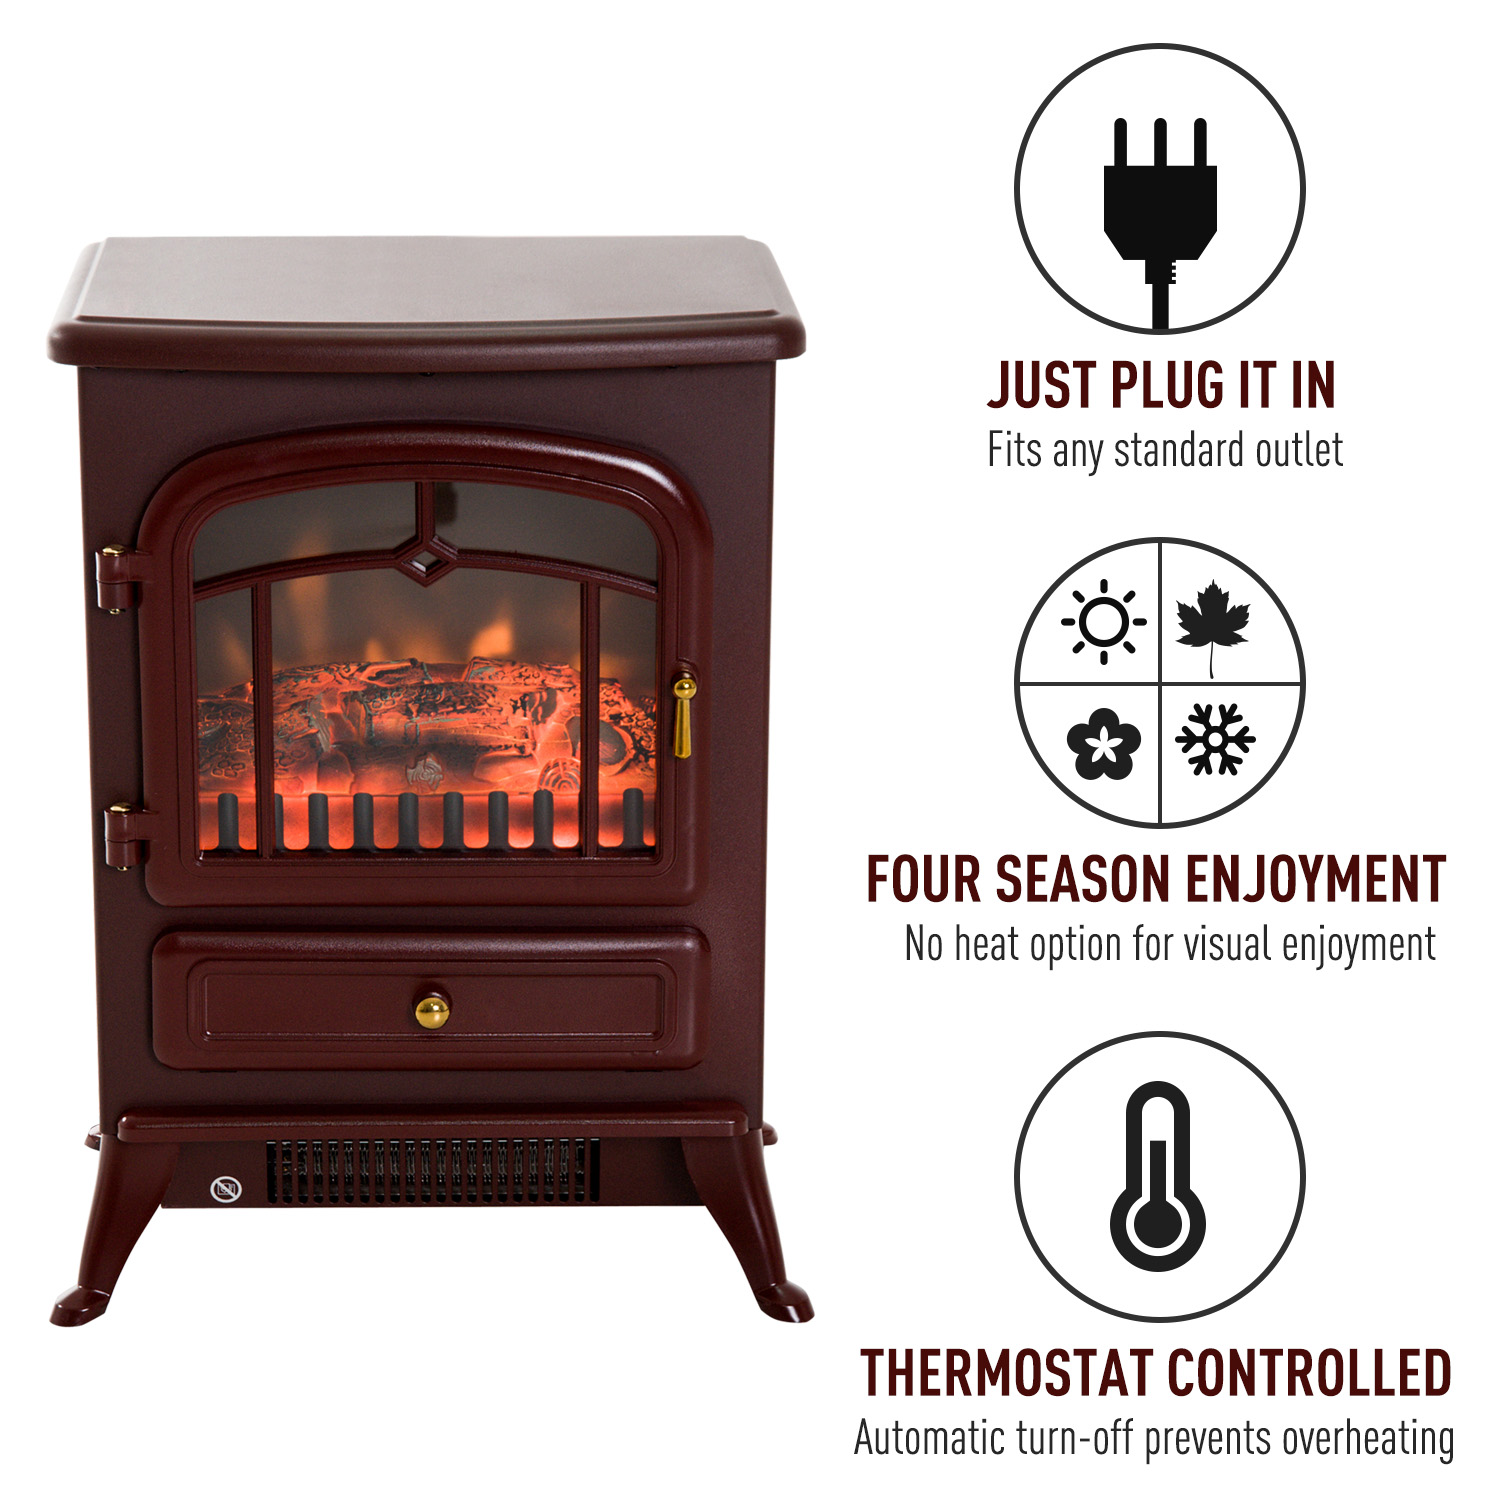 HOMCOM-750-1500W-Portable-Electric-Fireplace-Stove-Heater-Adjustable-LED-Flames thumbnail 11